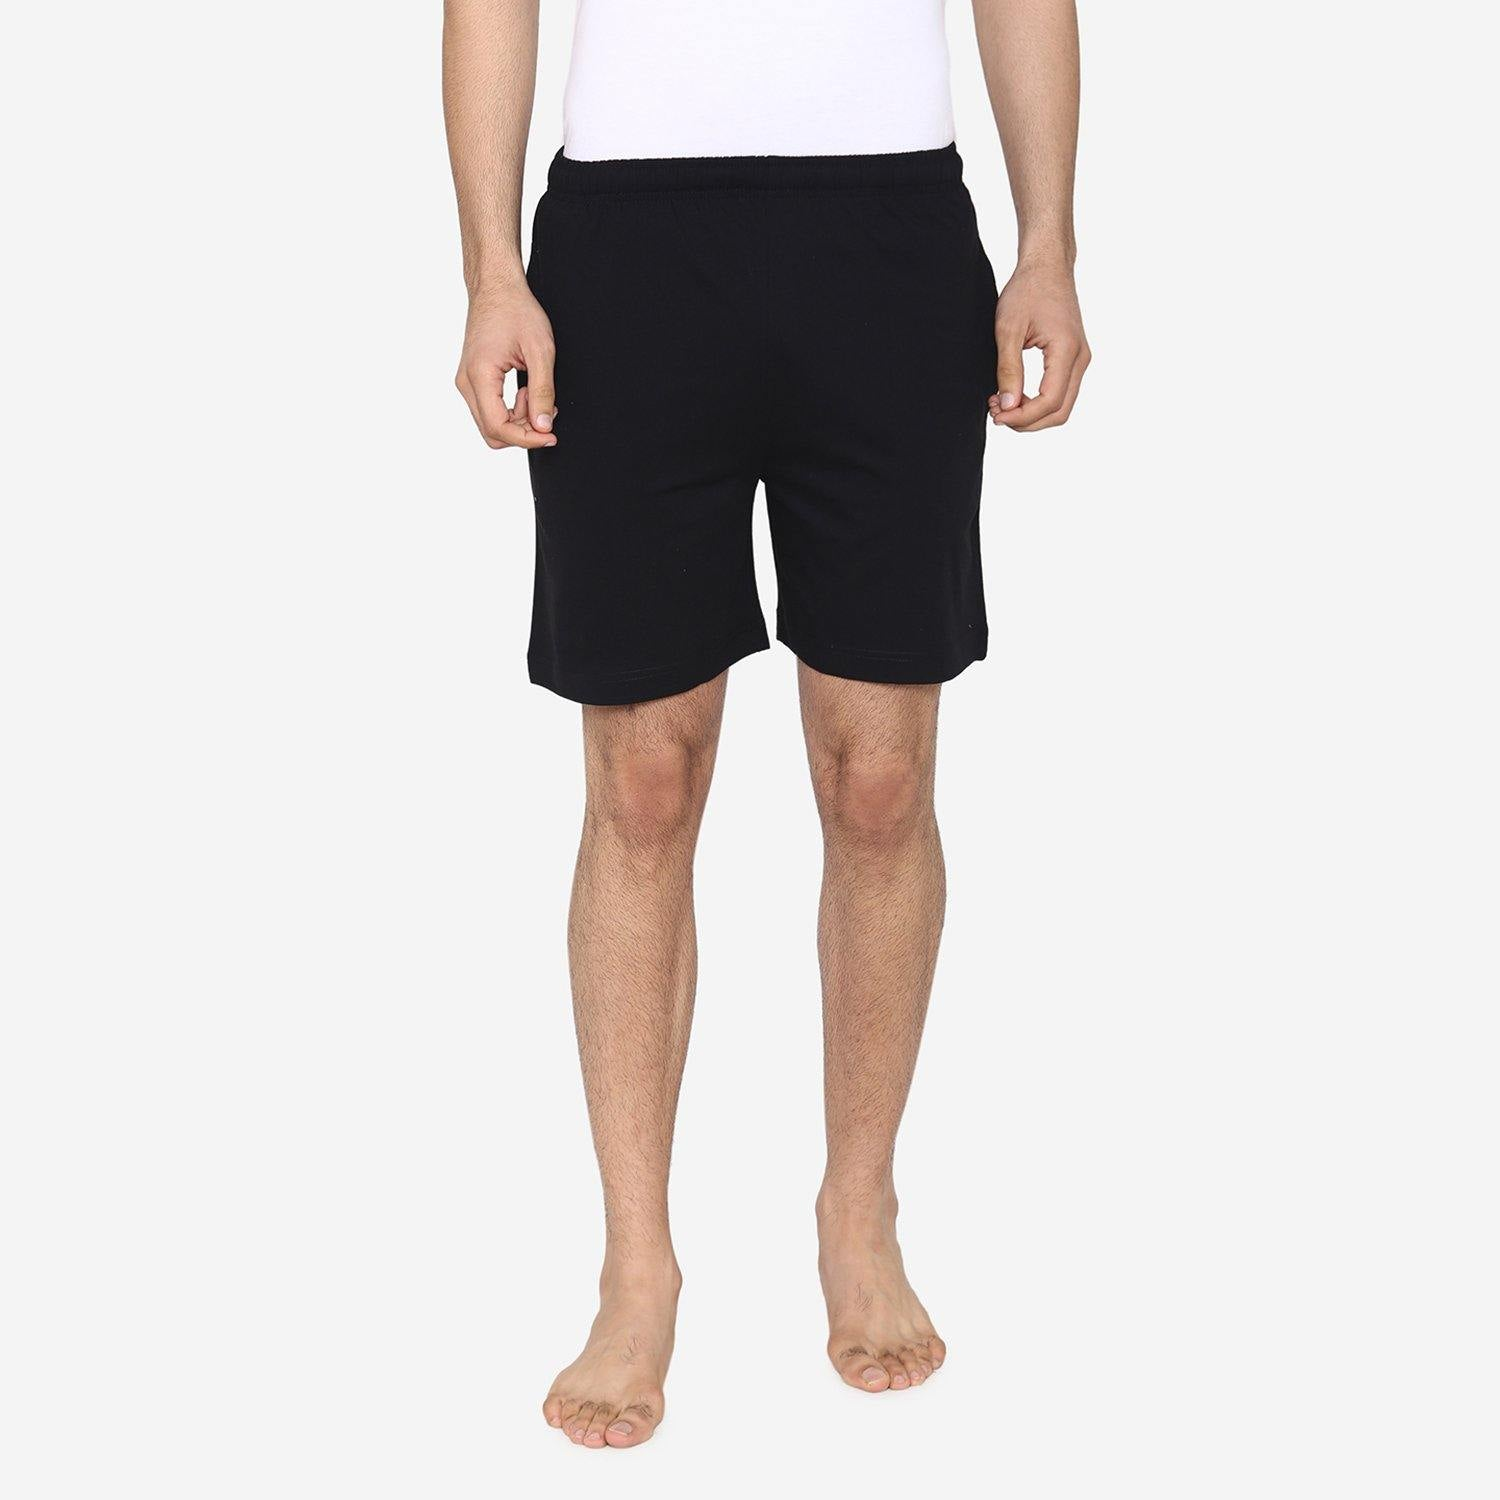 Men's Plain Comfy & Casual Shorts For Summer